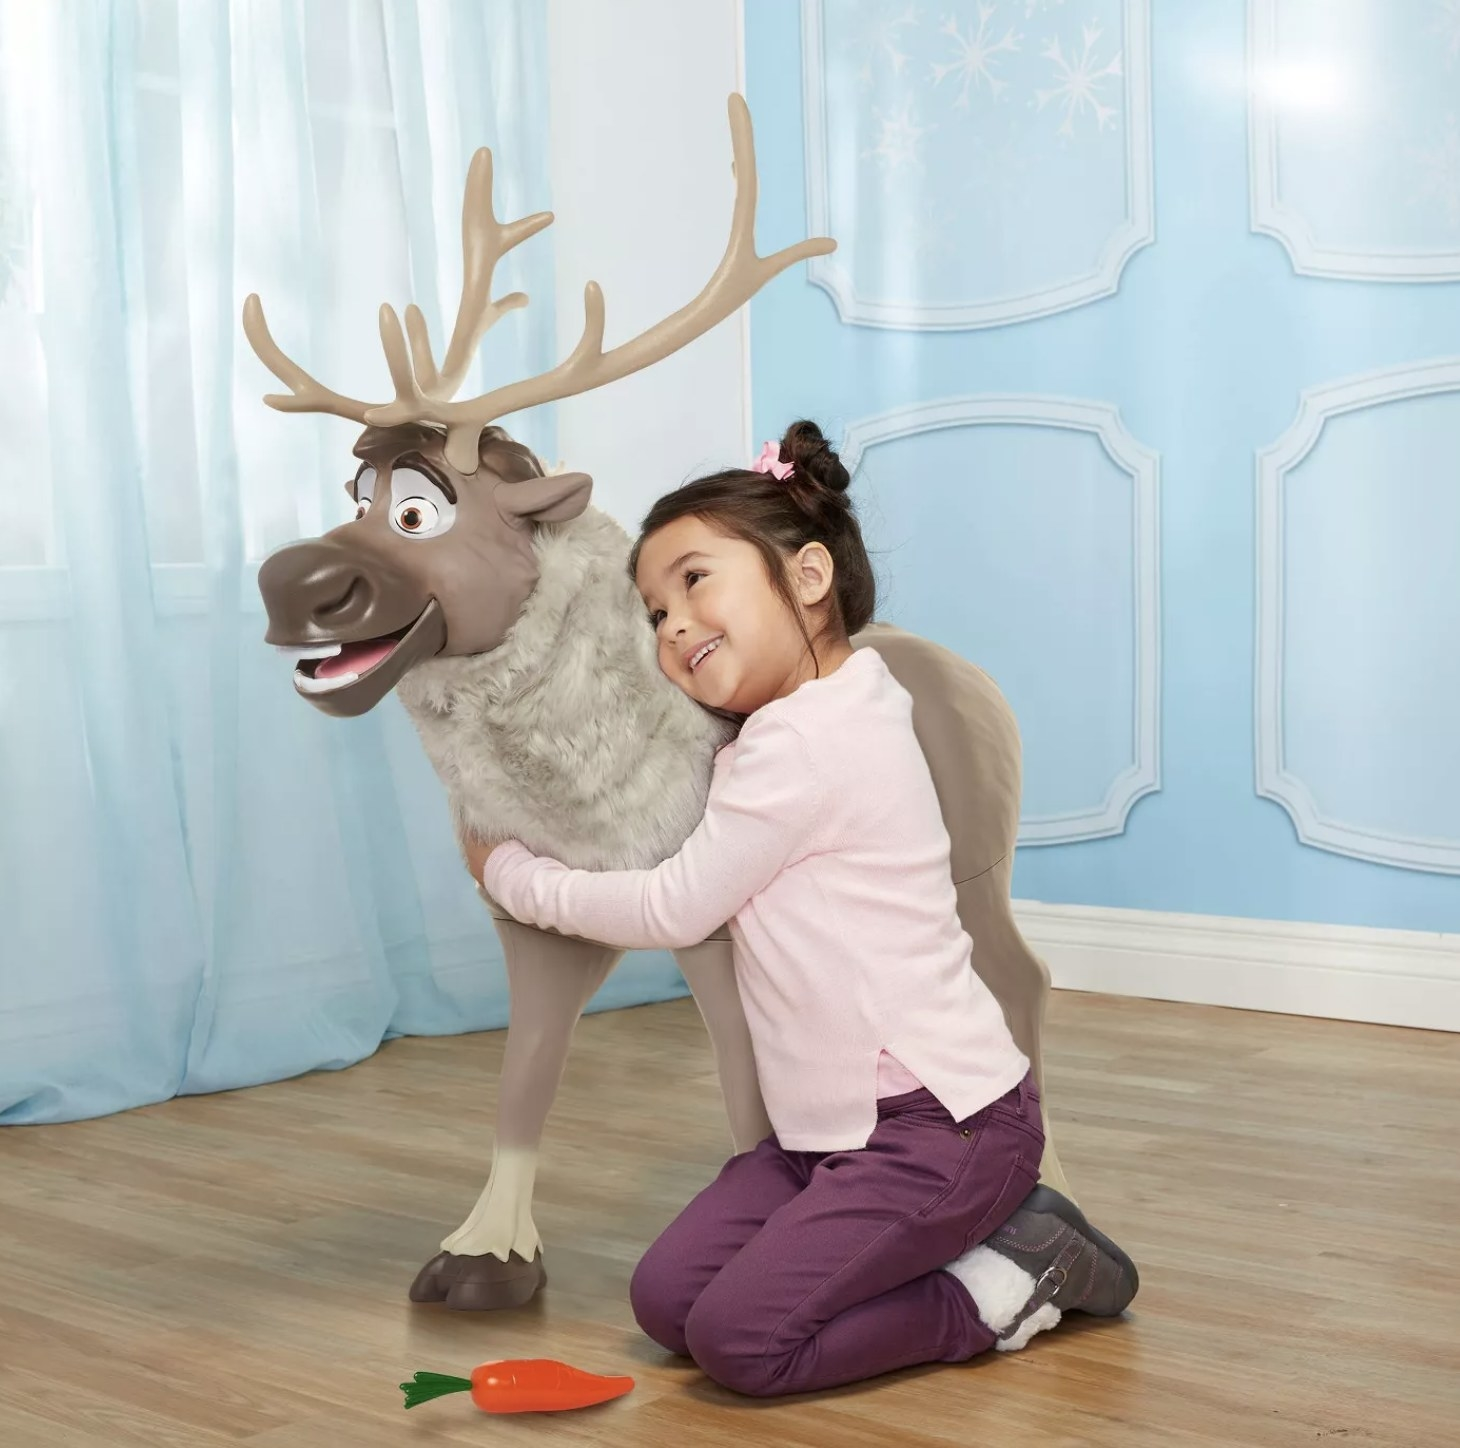 Child is holding a toy Sven from Frozen 2